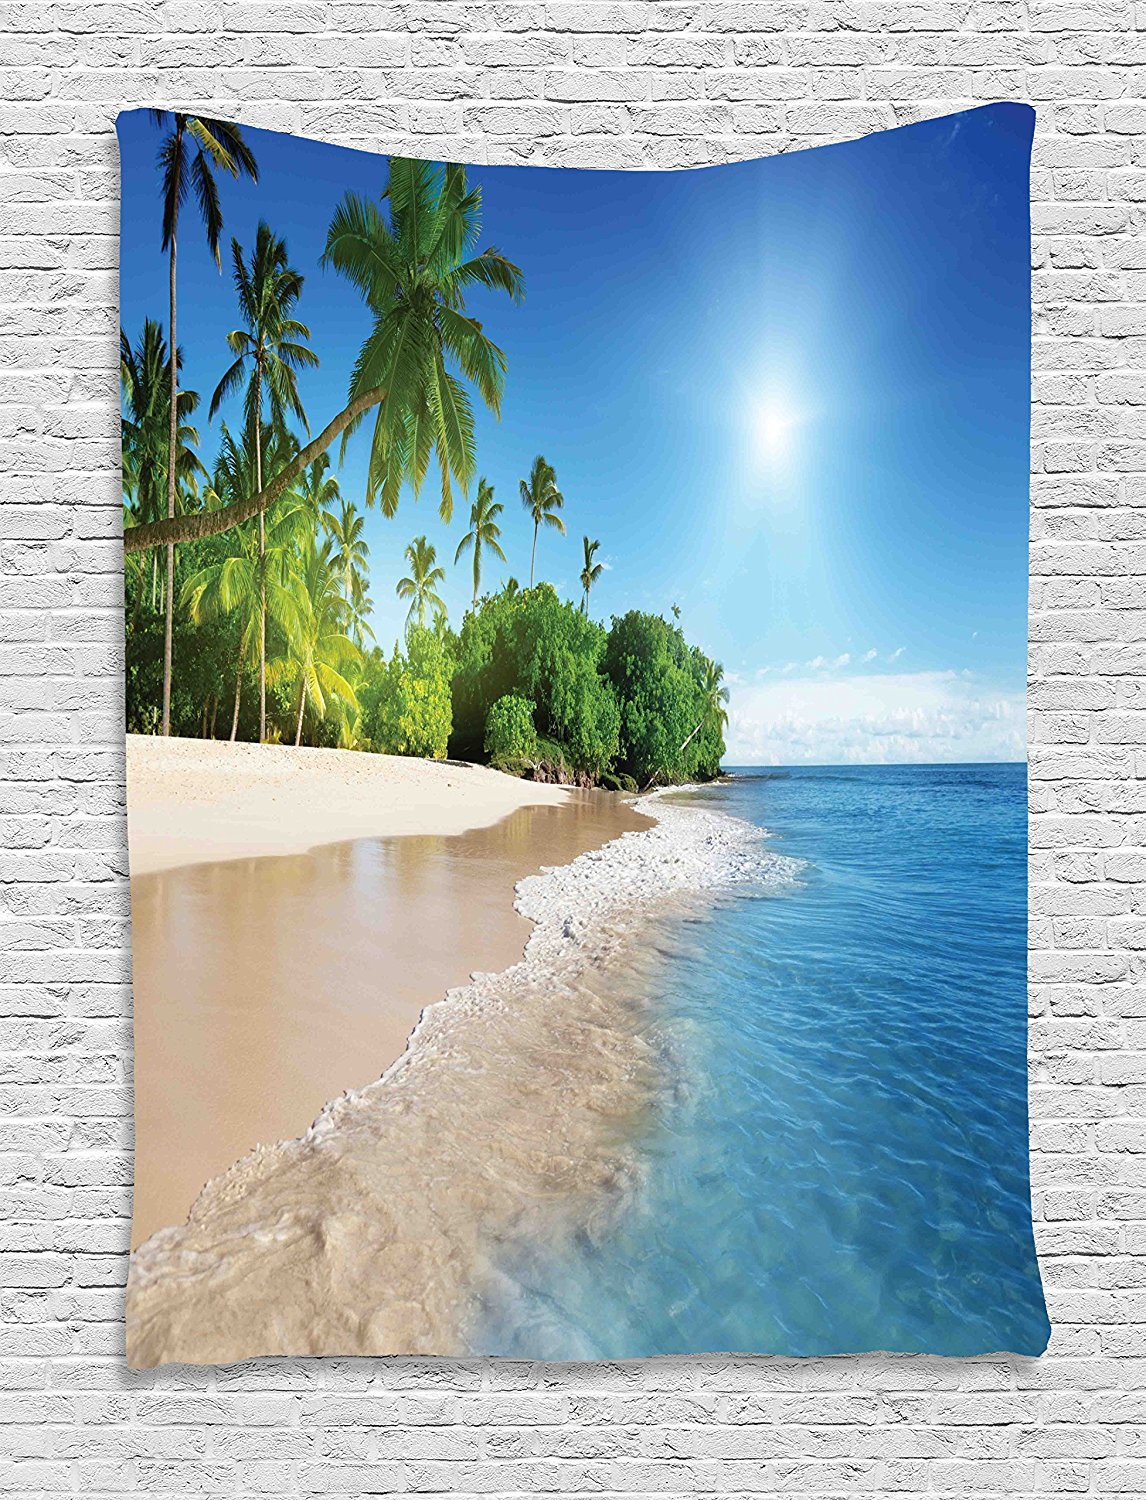 Blue Tapestry Decor Ocean Tropical Palm Trees on Sunny Island Beach Scene Panoramic View Picture for Bedroom